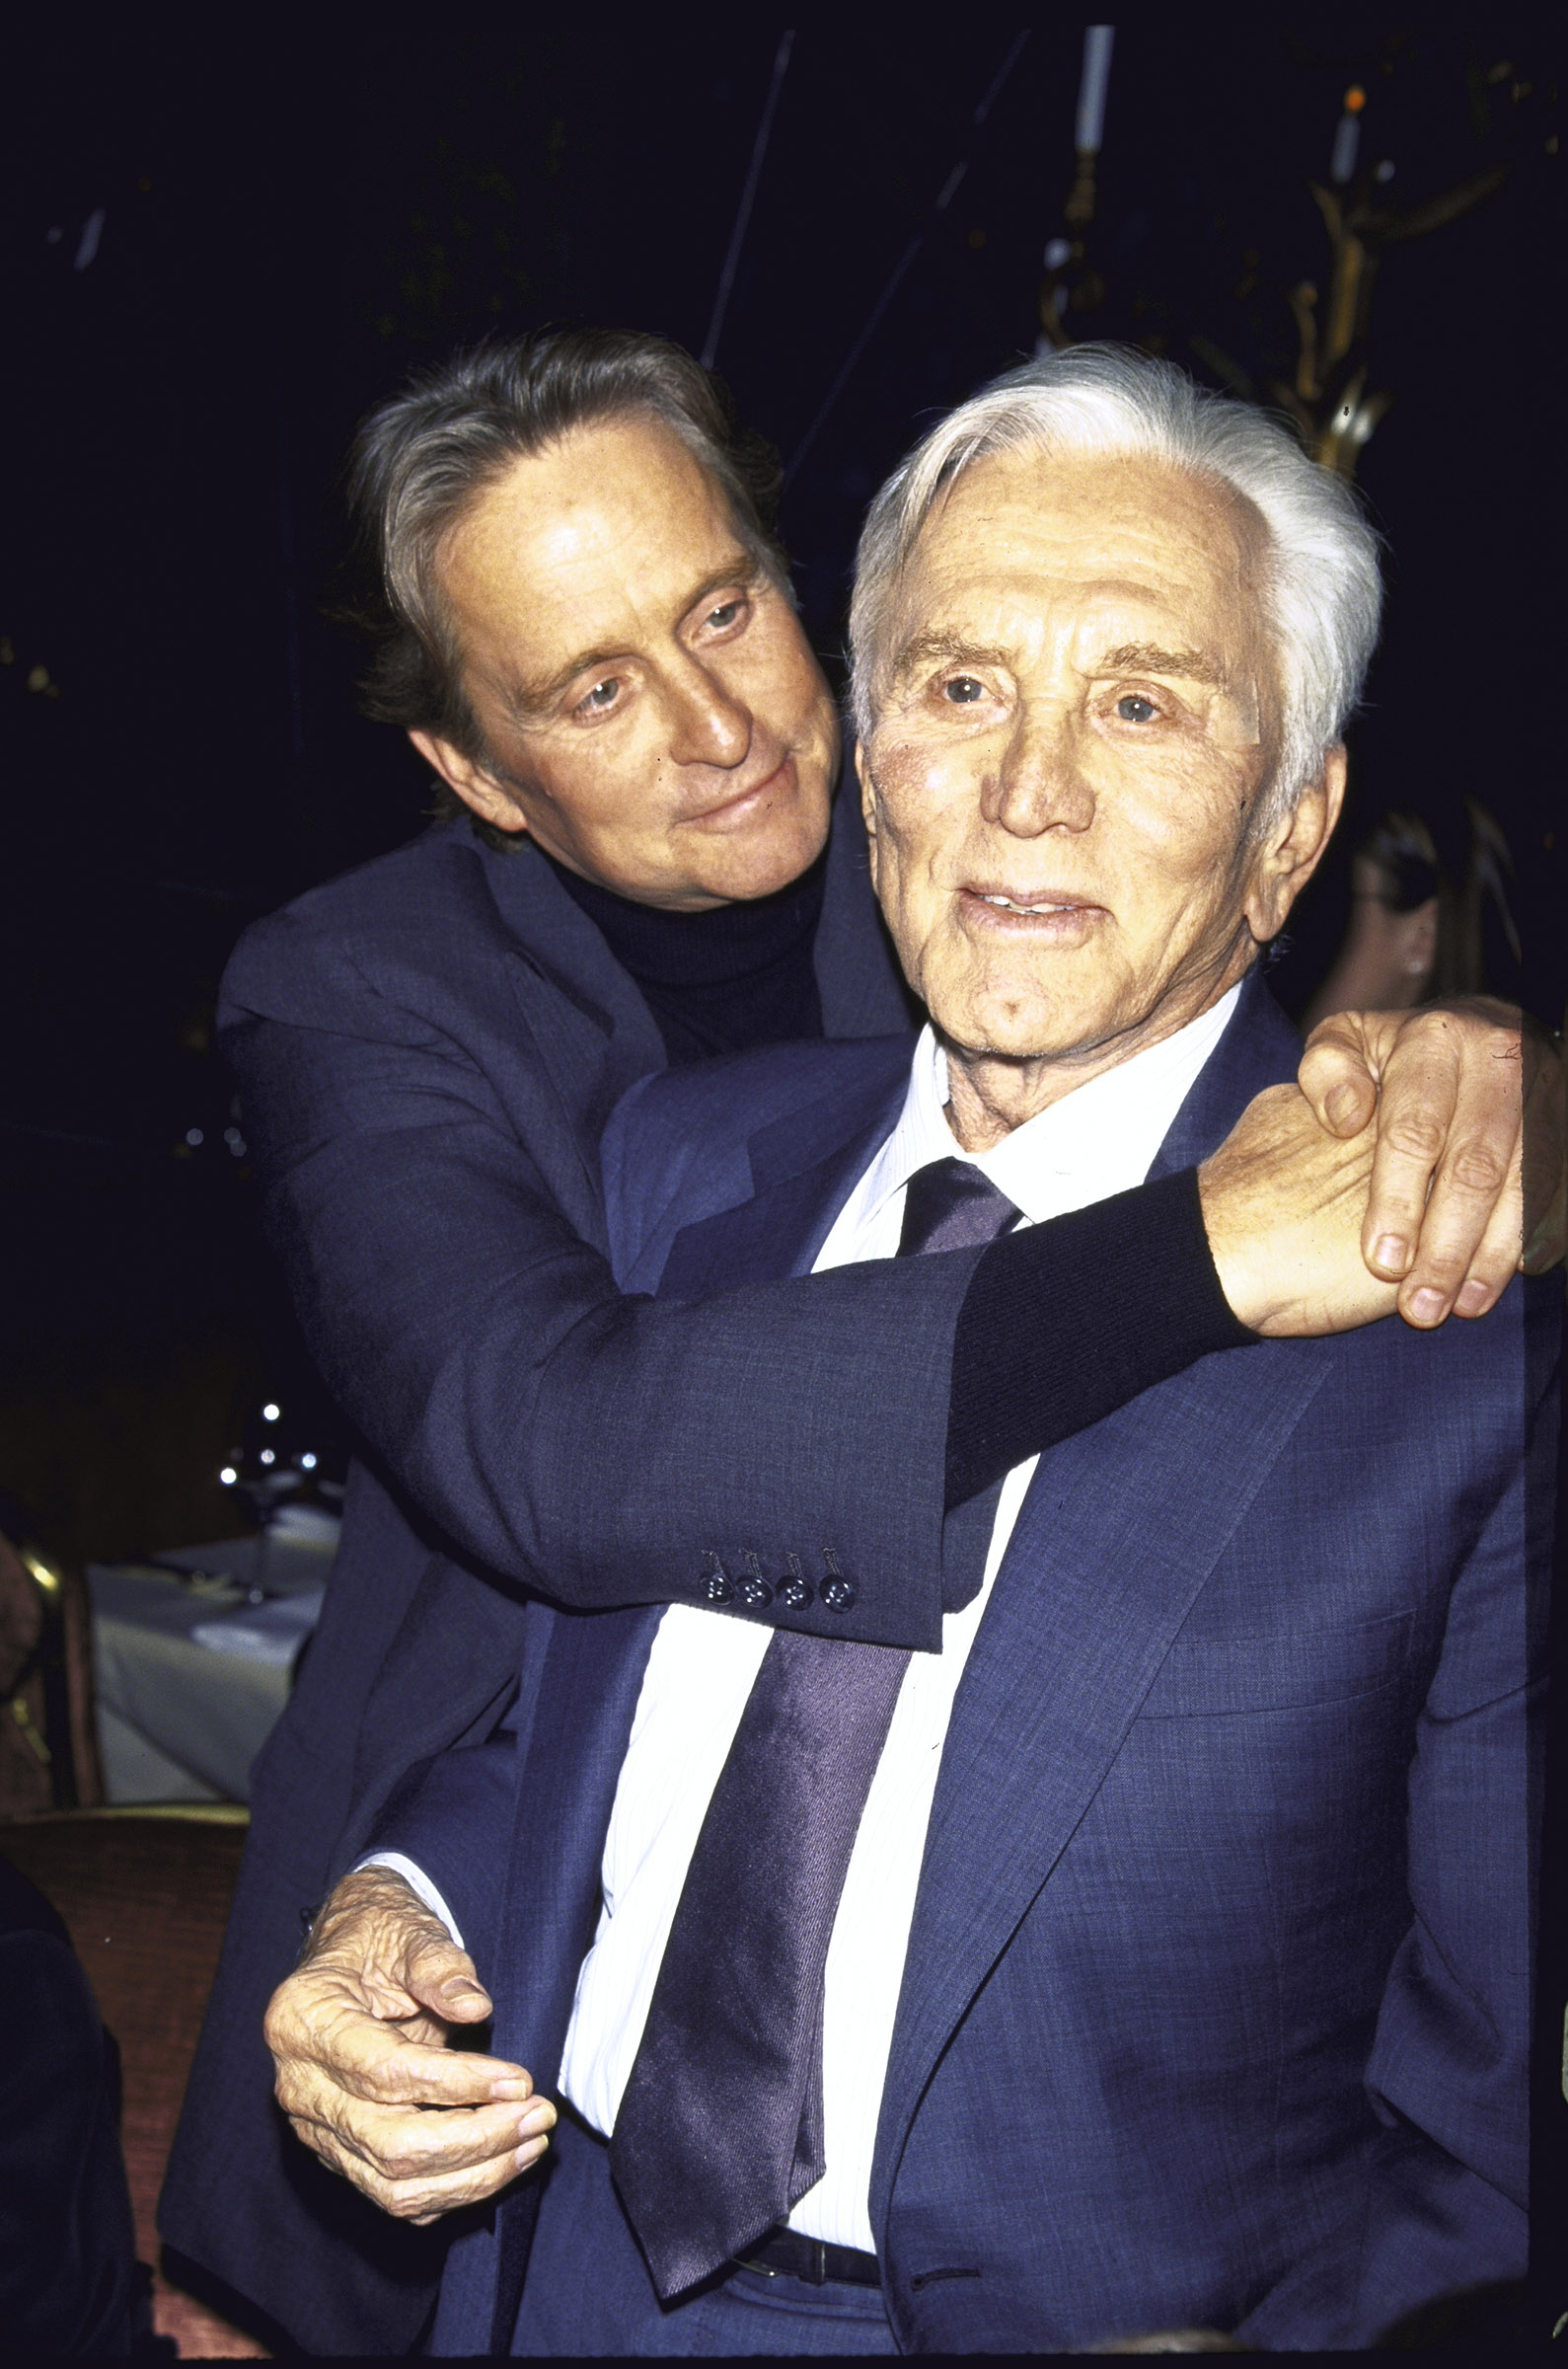 (L-R) Actor Michael Douglas and his father, actor Kirk Douglas, at a film premiere of Kirk's Diamonds in December 1999.